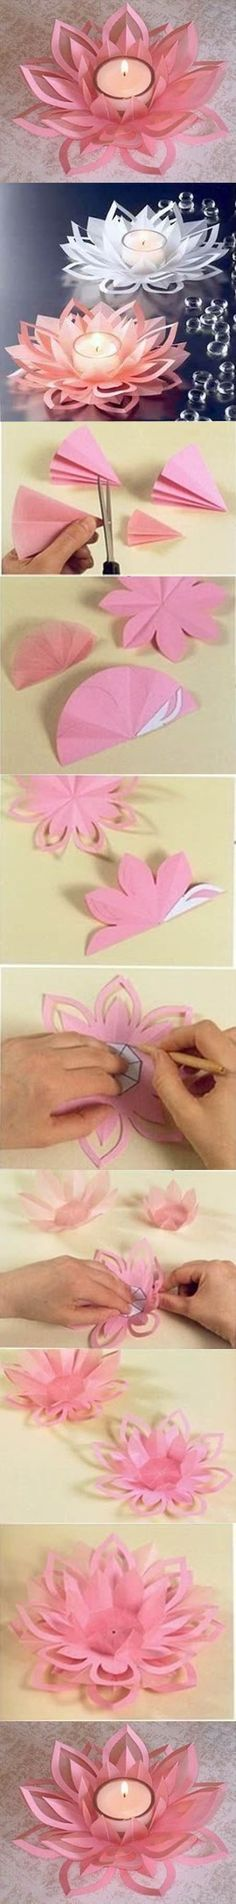 DIY Paper Lotus Flower